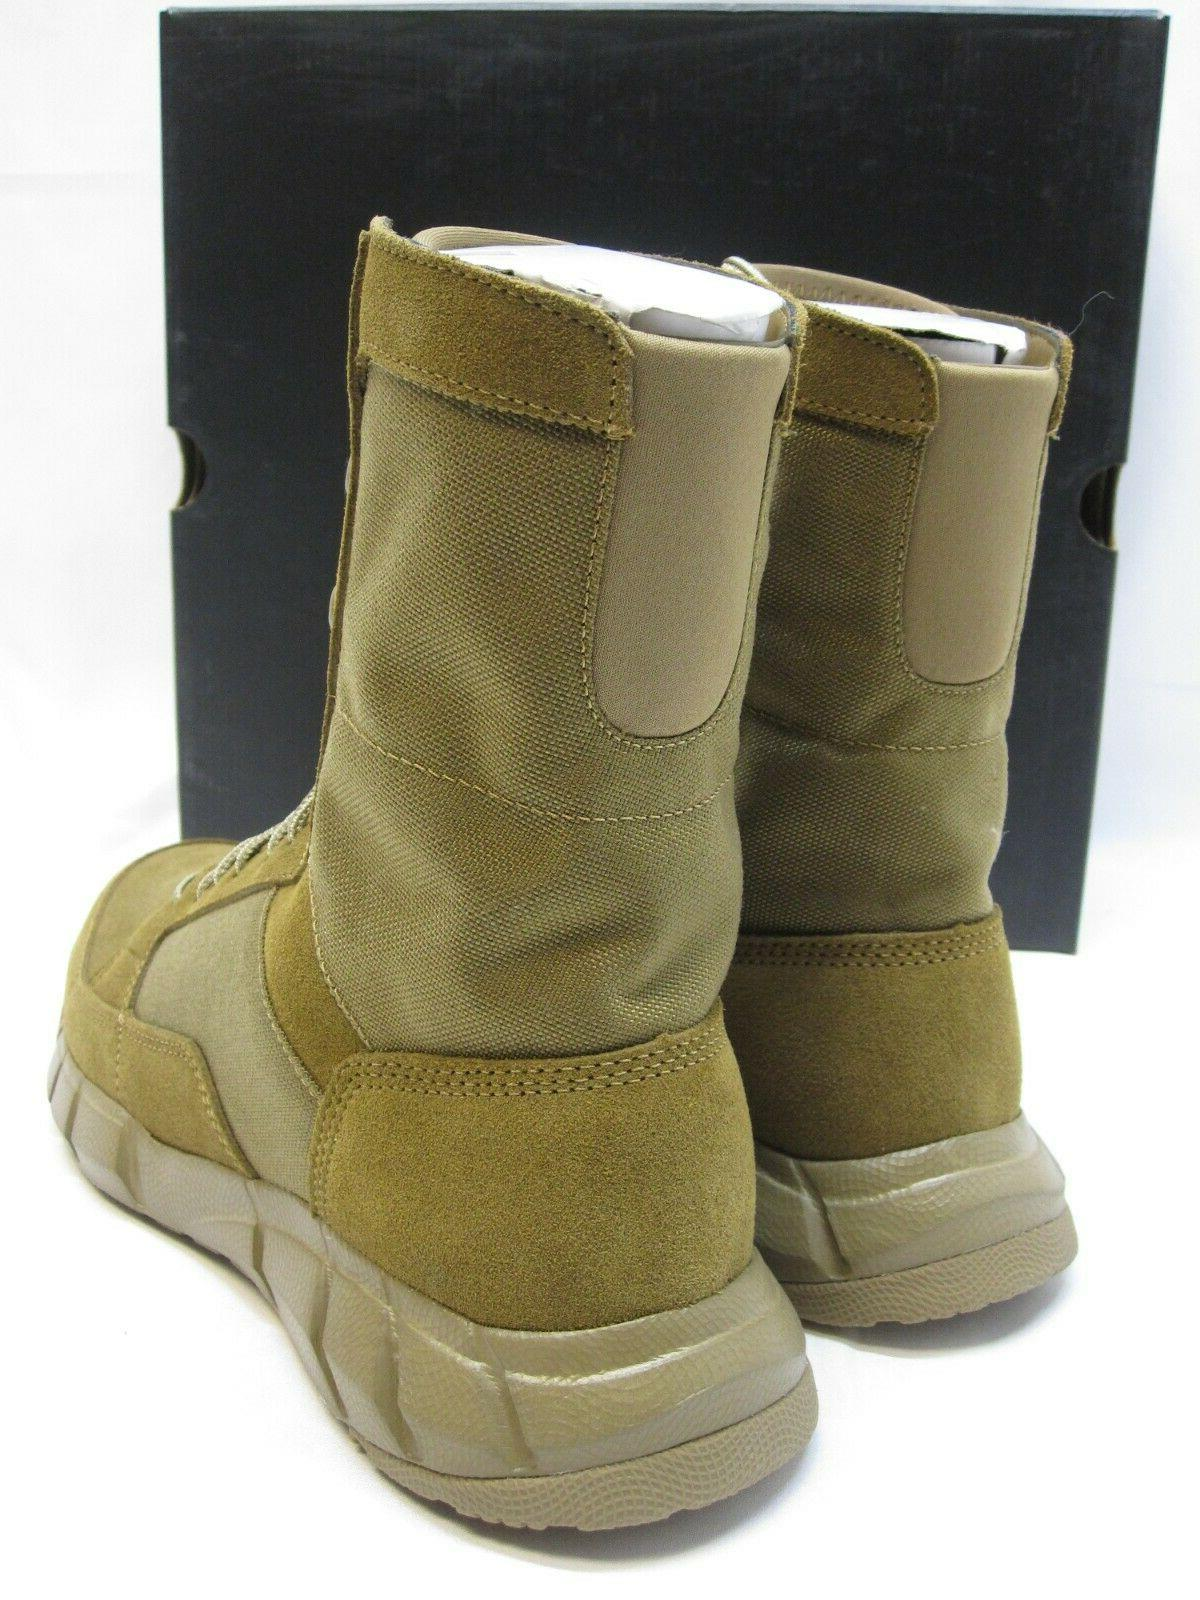 OAKLEY ASSAULT ARMY BOOTS COYOTE BROWN BOOT